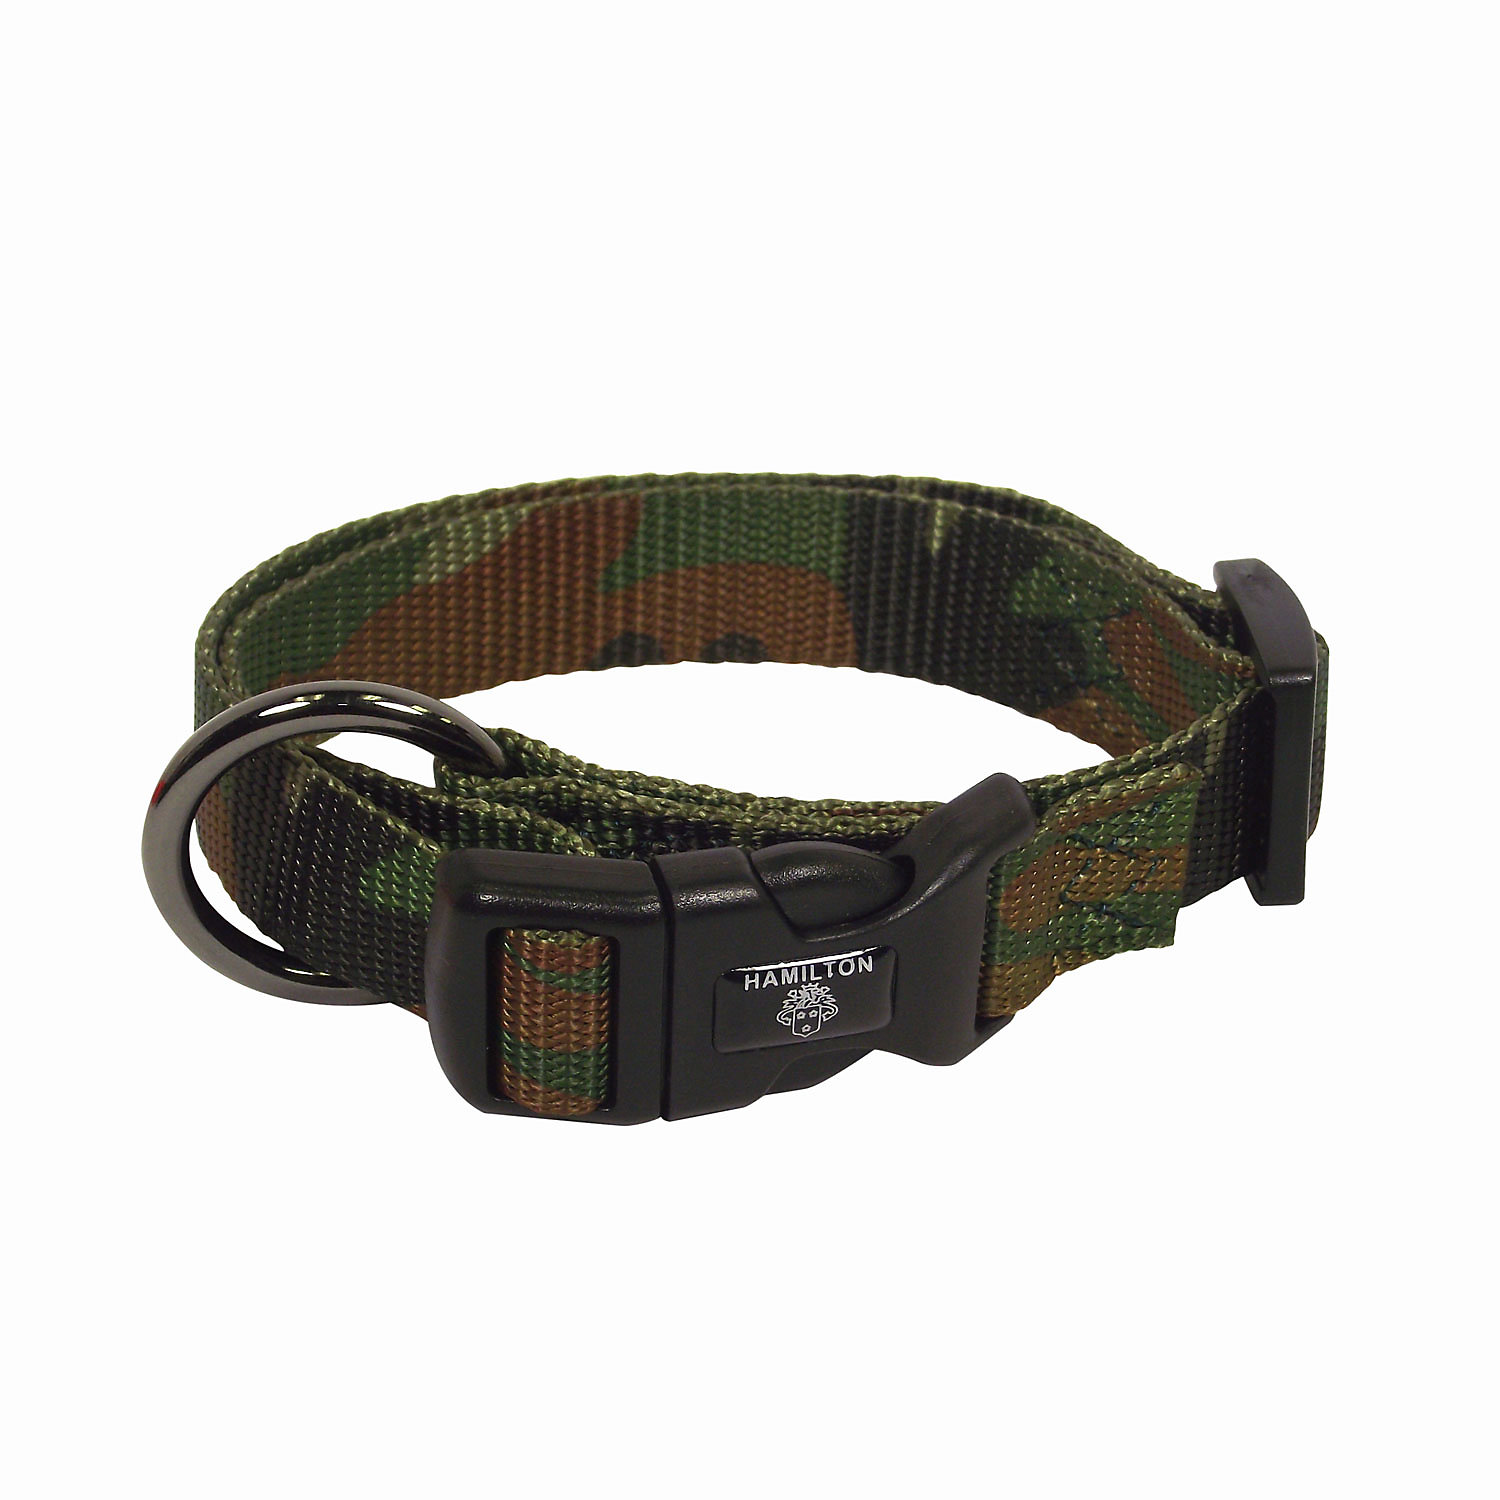 Hamilton Adjustable Nylon Dog Collar In Camouflage Print Large 16 26 L X 1 W Brown